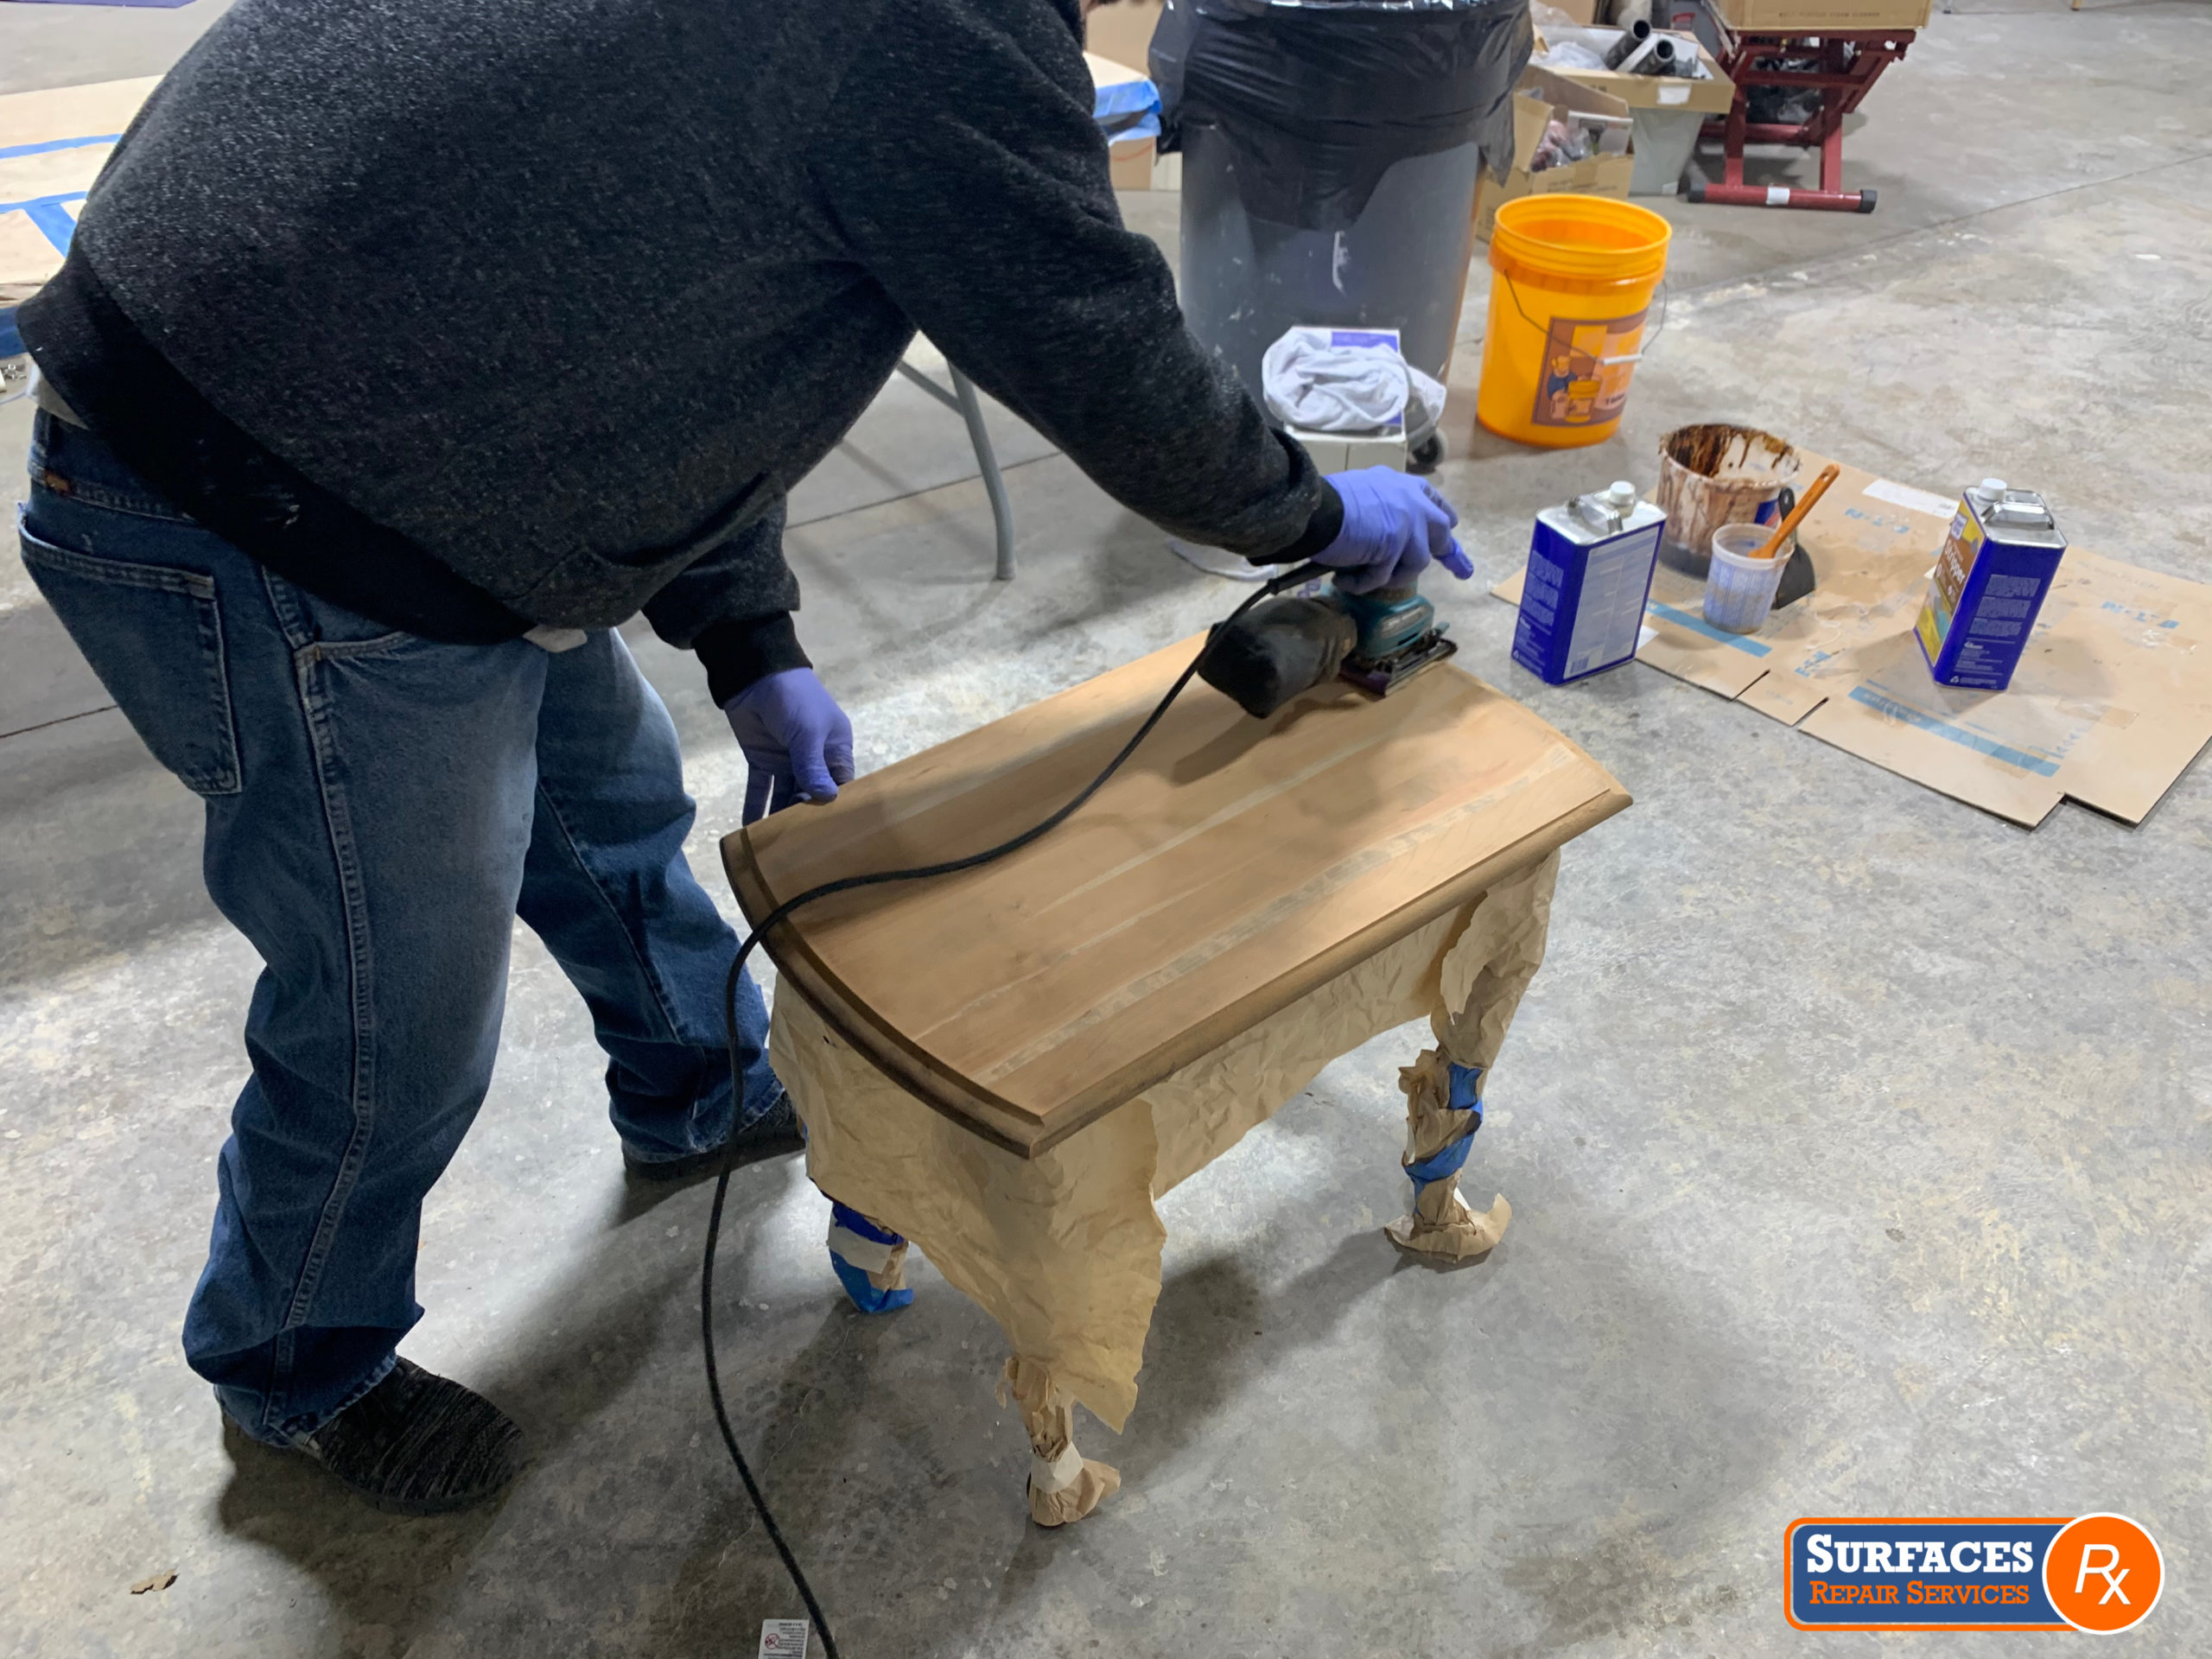 Surfaces Rx Sanding Drop-Leaf Cherry Table Dallas Texas